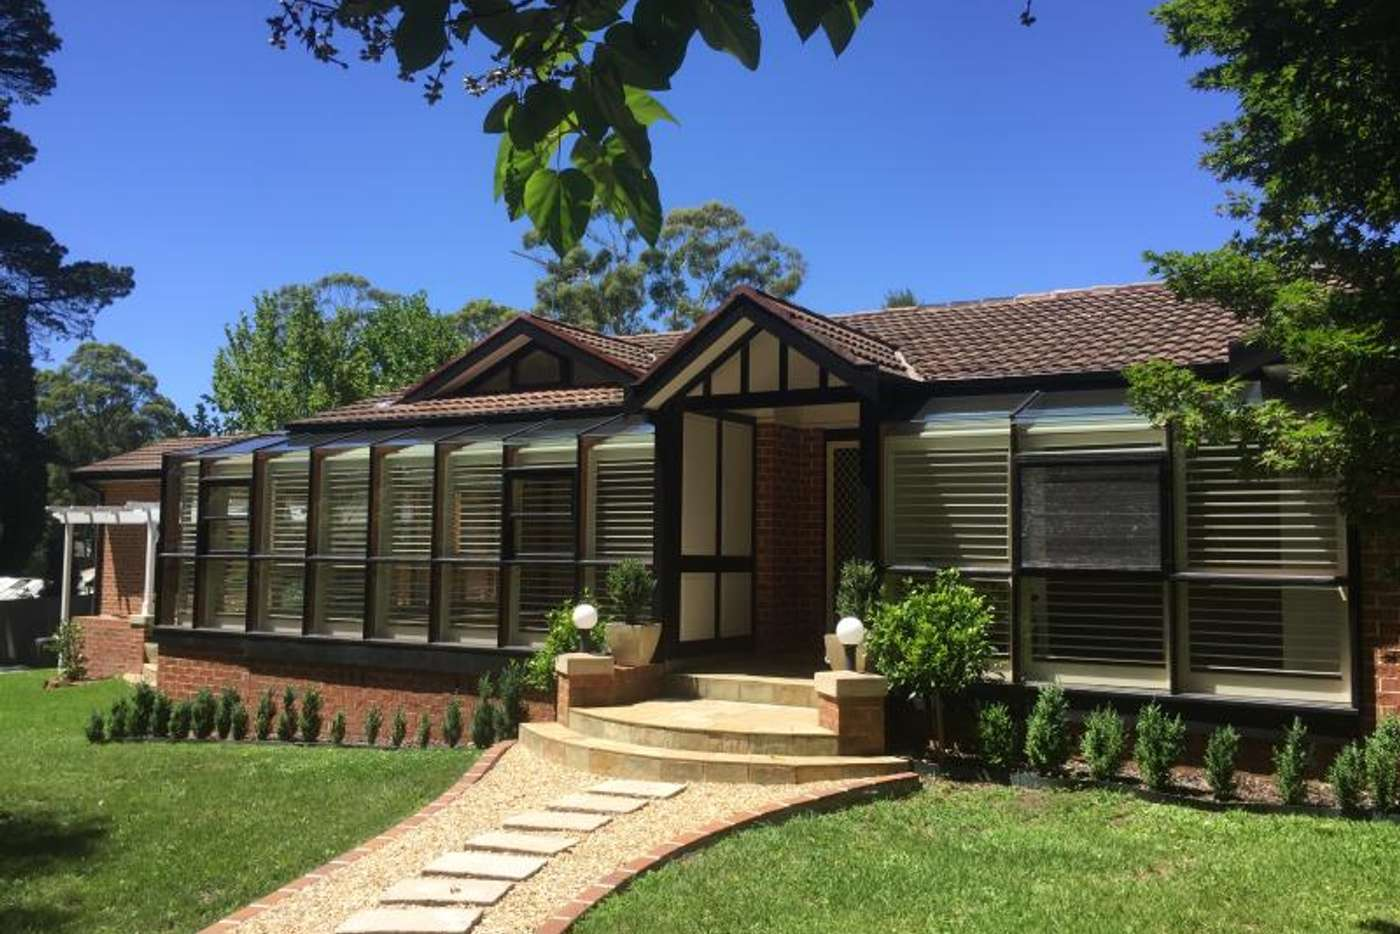 Main view of Homely house listing, 72 Bendooley Street, Bowral NSW 2576